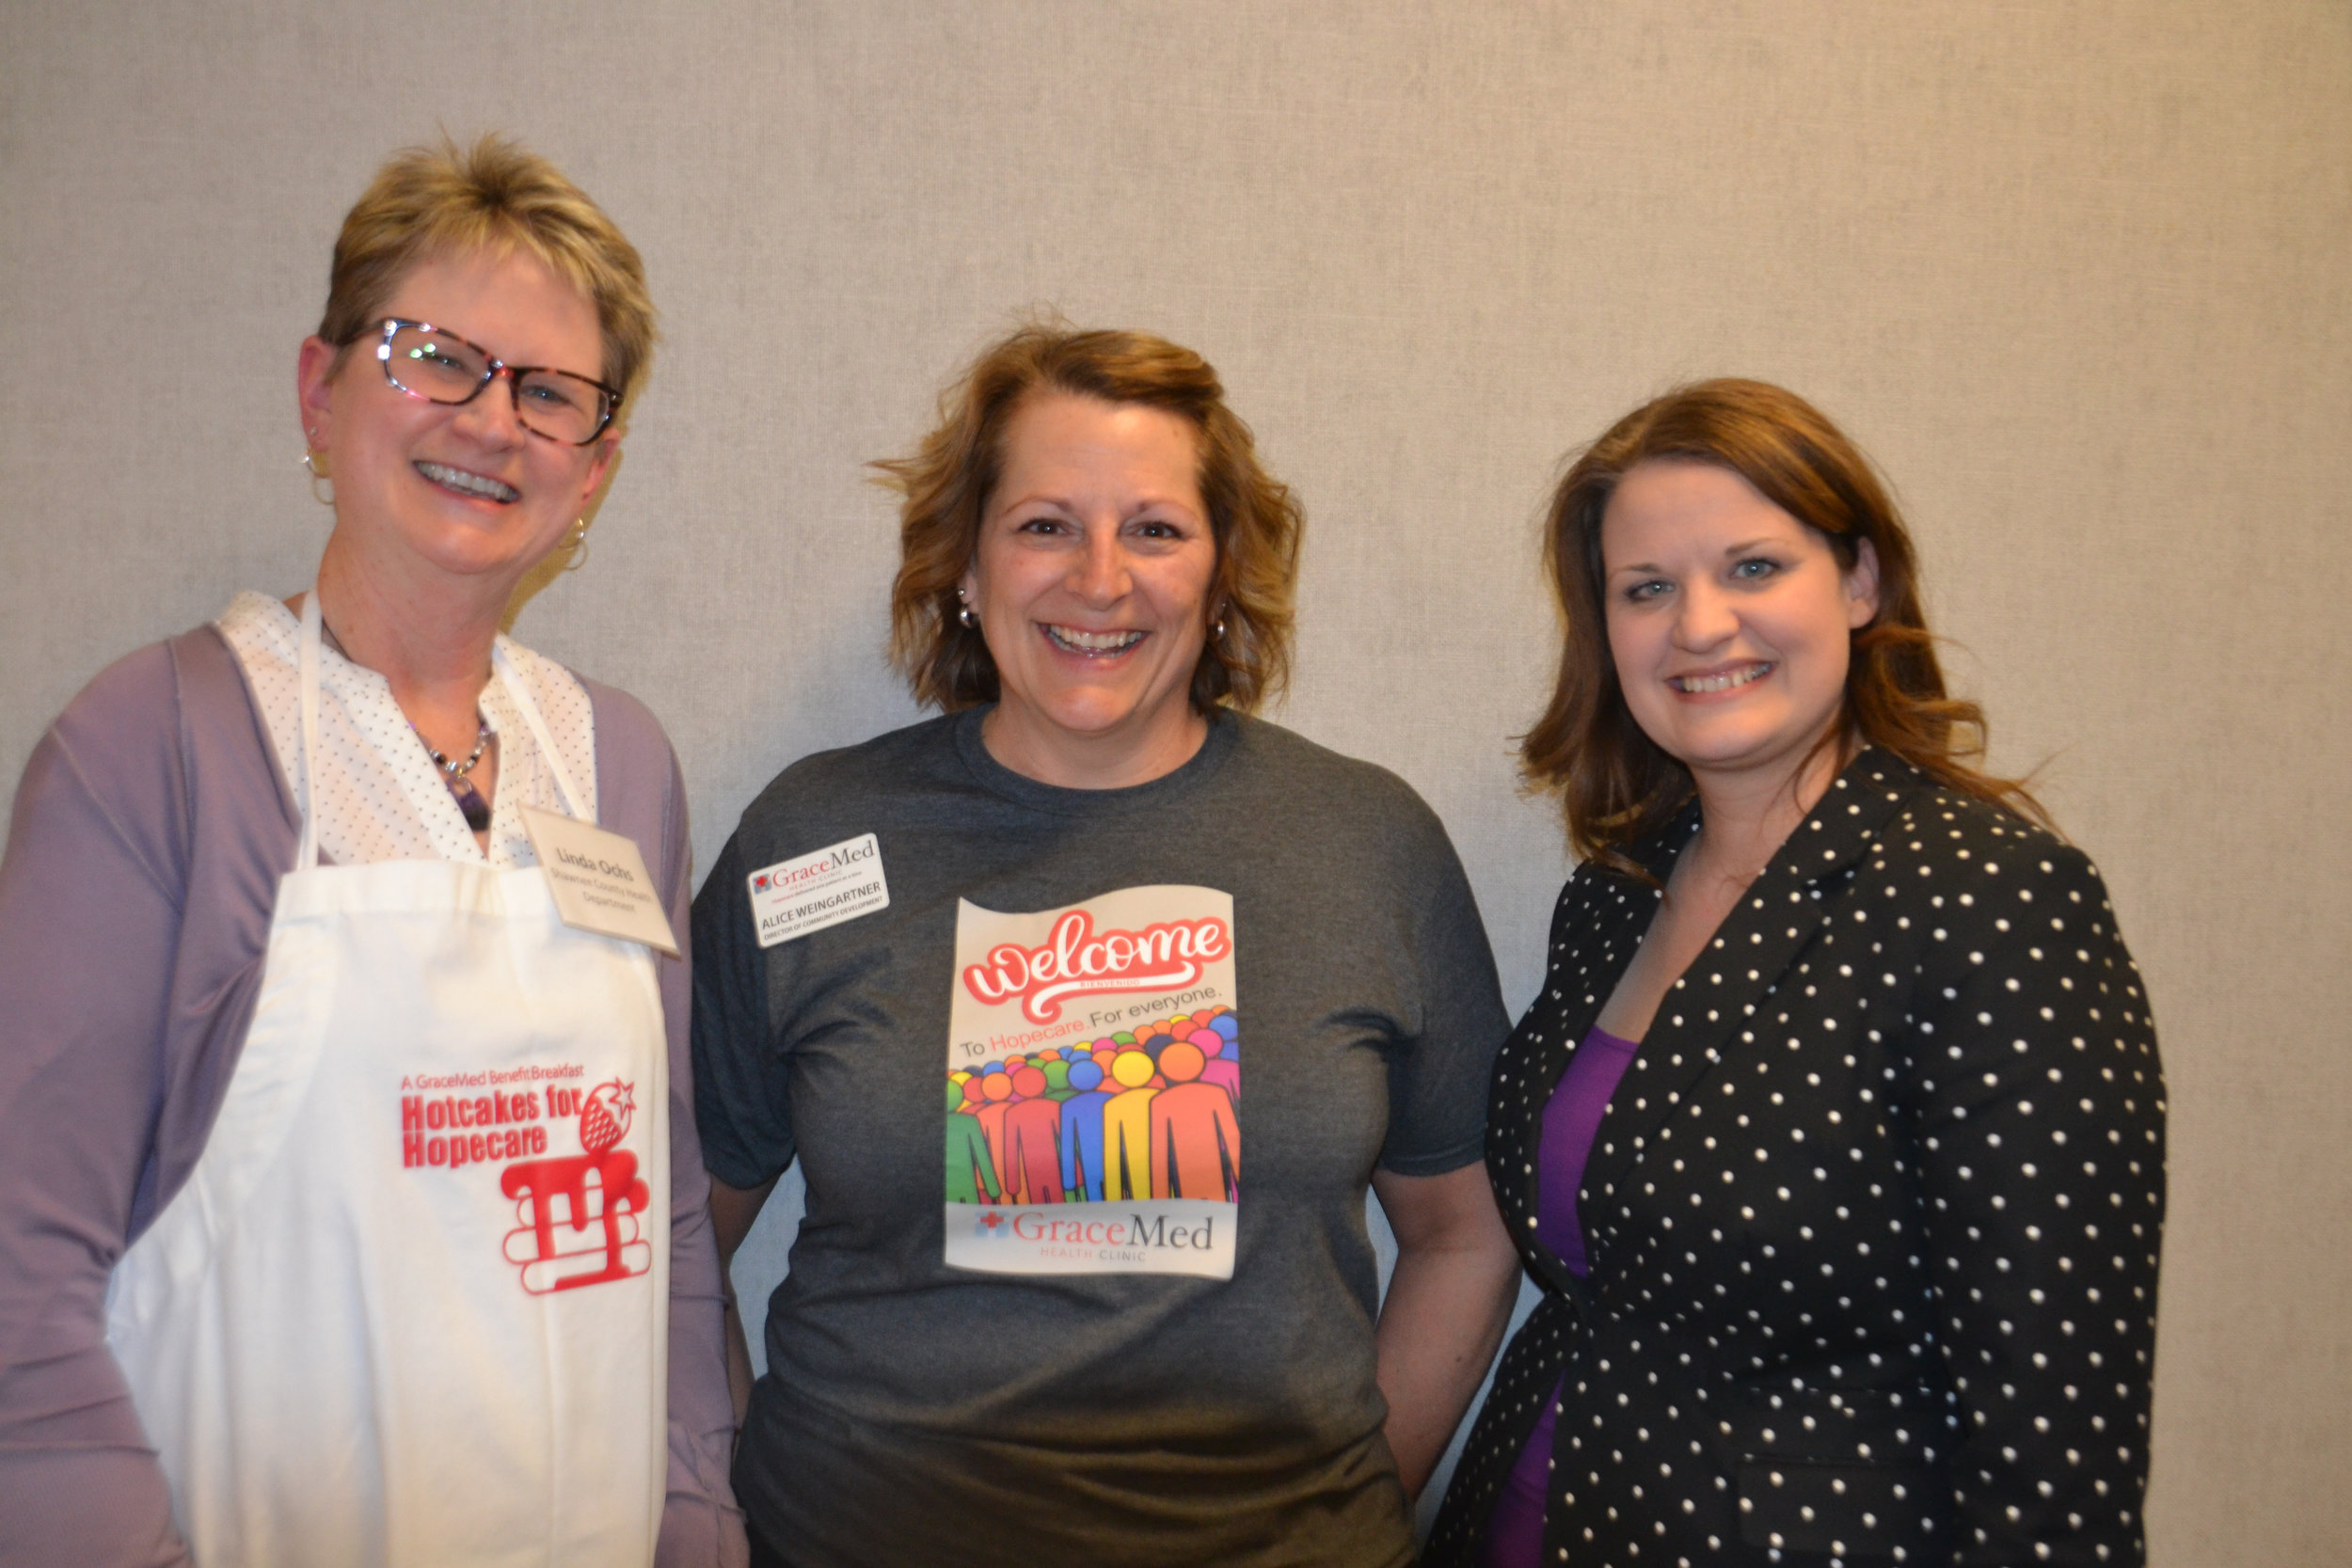 Linda Ochs from the Shawnee County Health Department, GraceMed's Alice Weingartner and Misty Kruger from Topeka Public Schools take a break from their food serving duties.